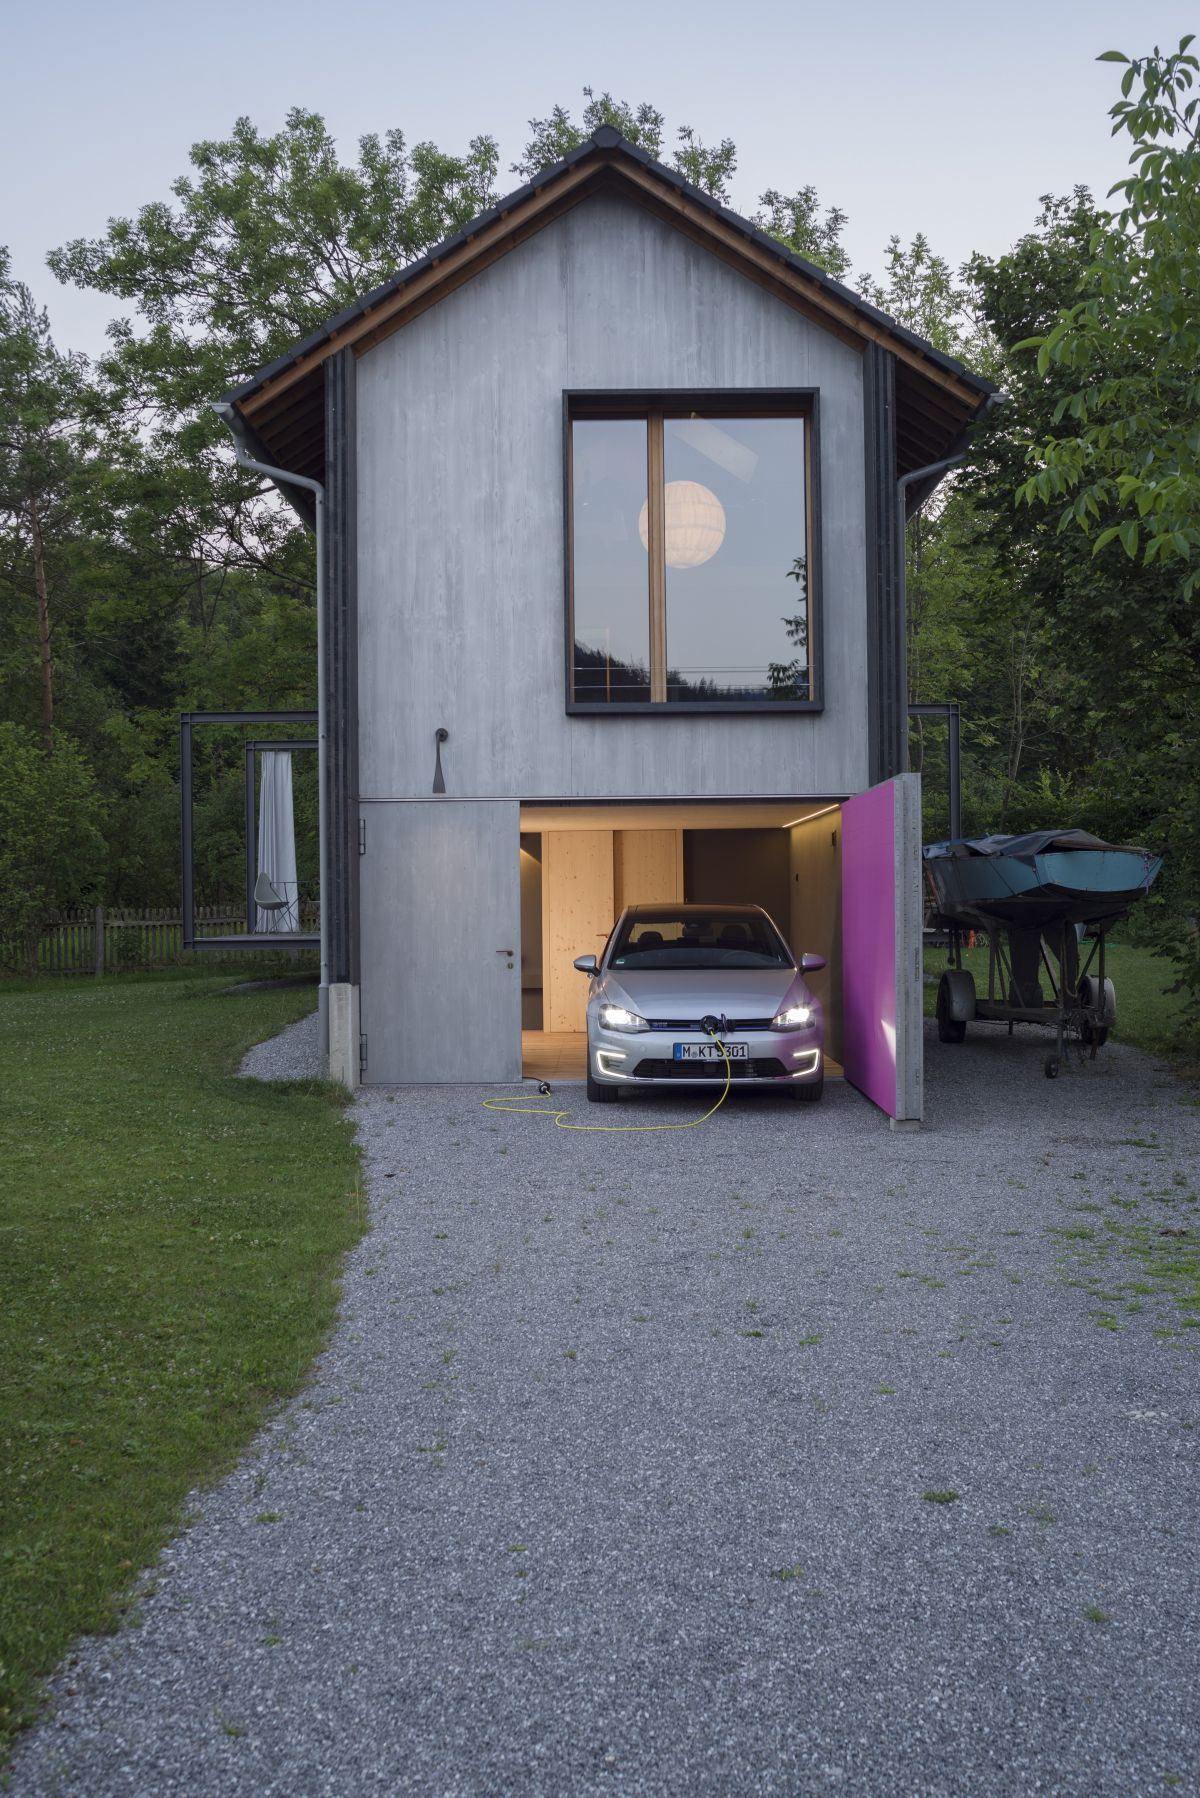 The large and very heavy garage door is bright pink on the inside, adding a quirky touch to the house